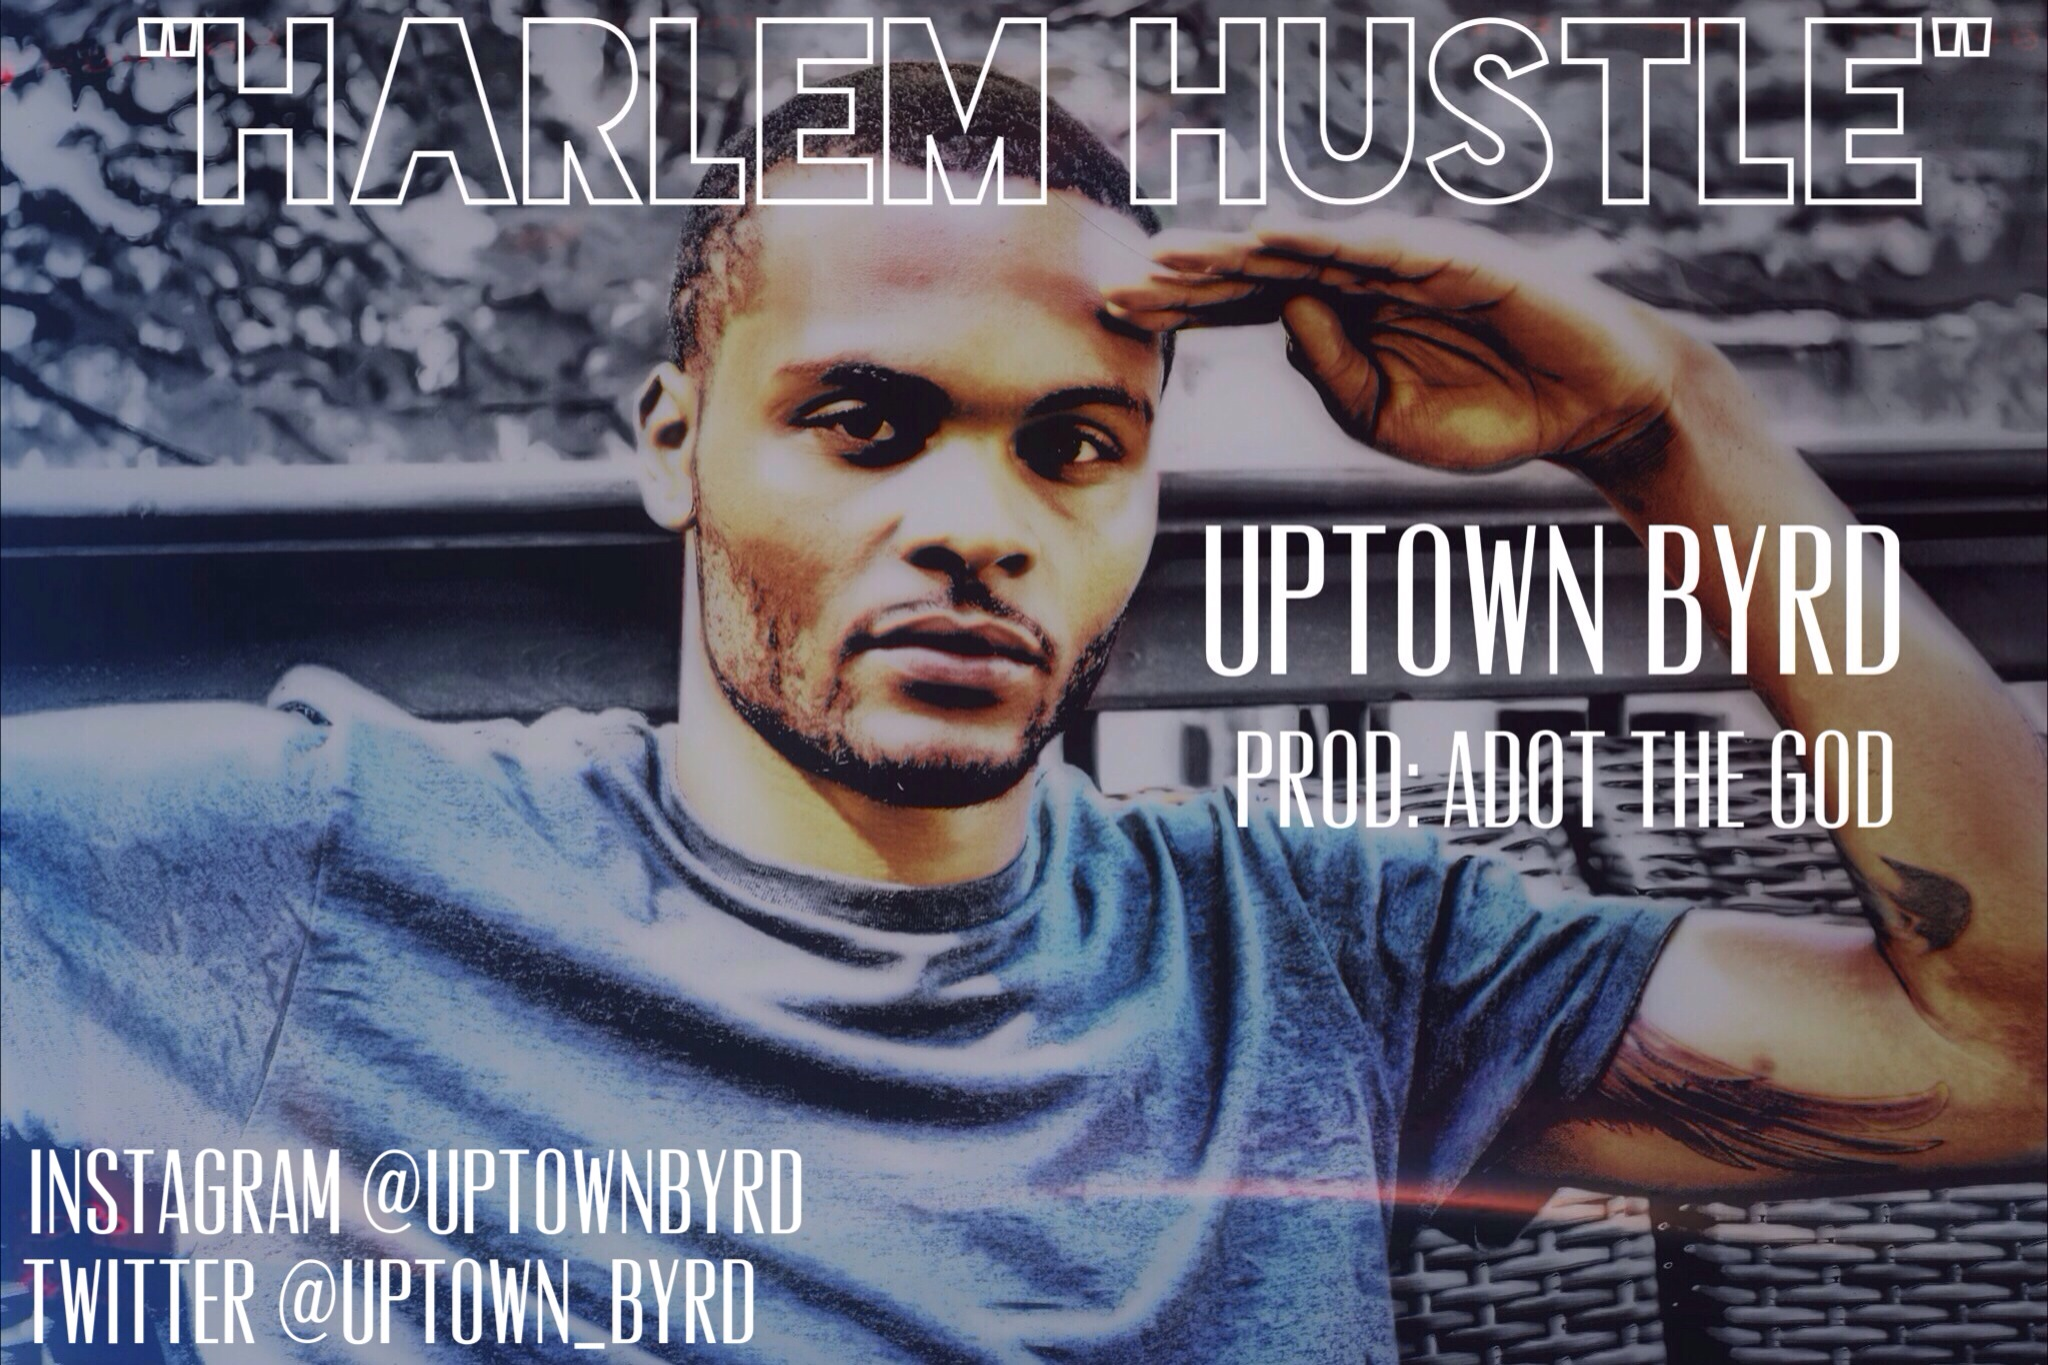 Uptown Byrd - Harlem Hustle (Prod by ADot The God)